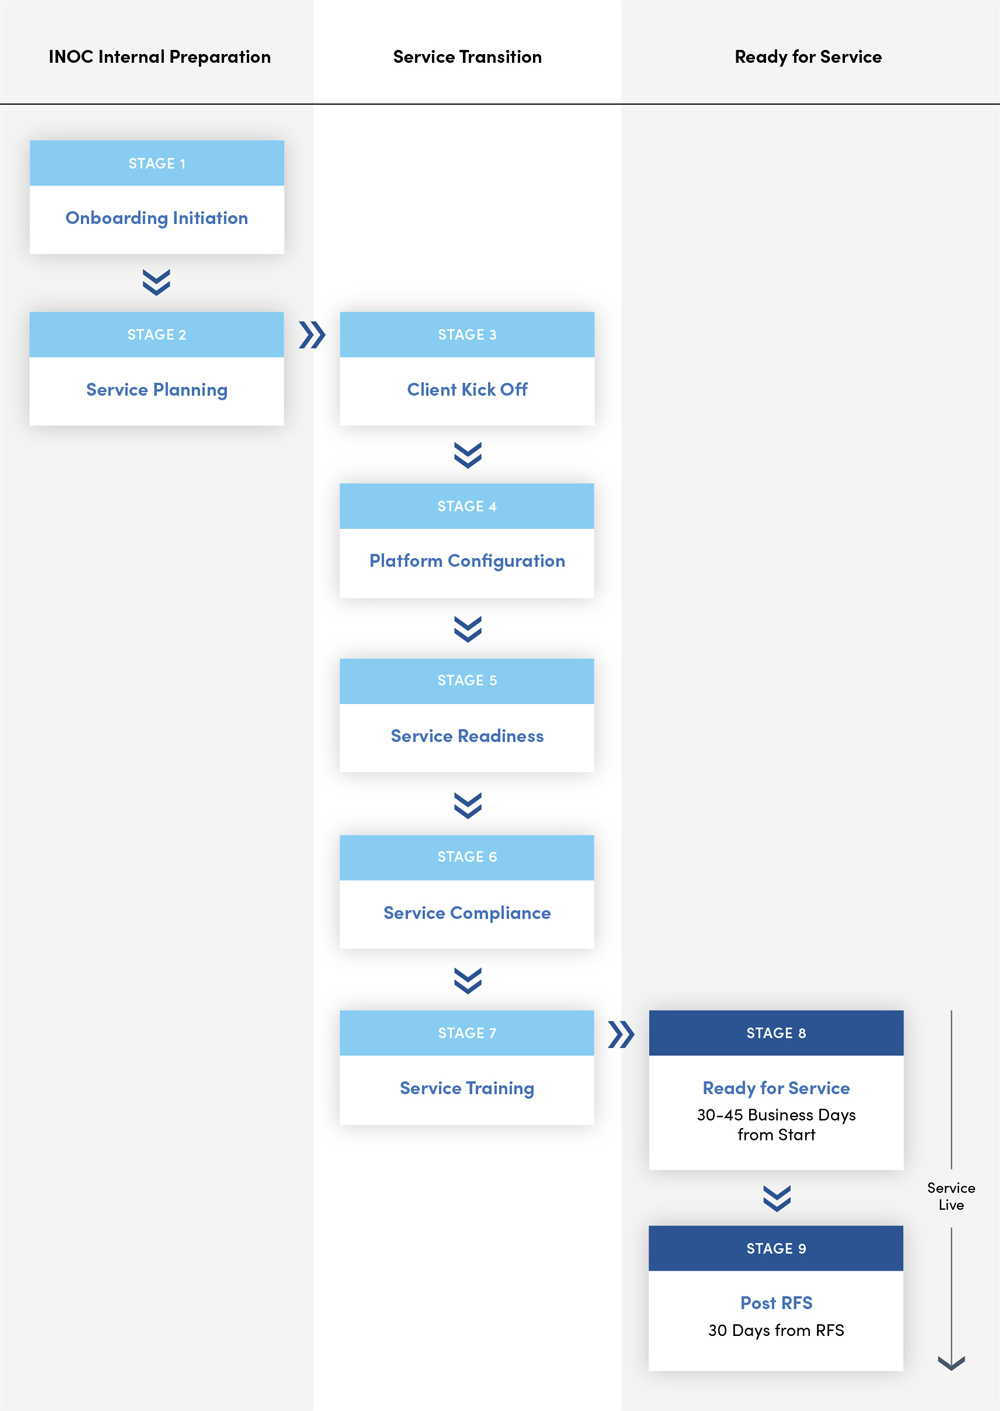 Network Operations Center Onboarding Process